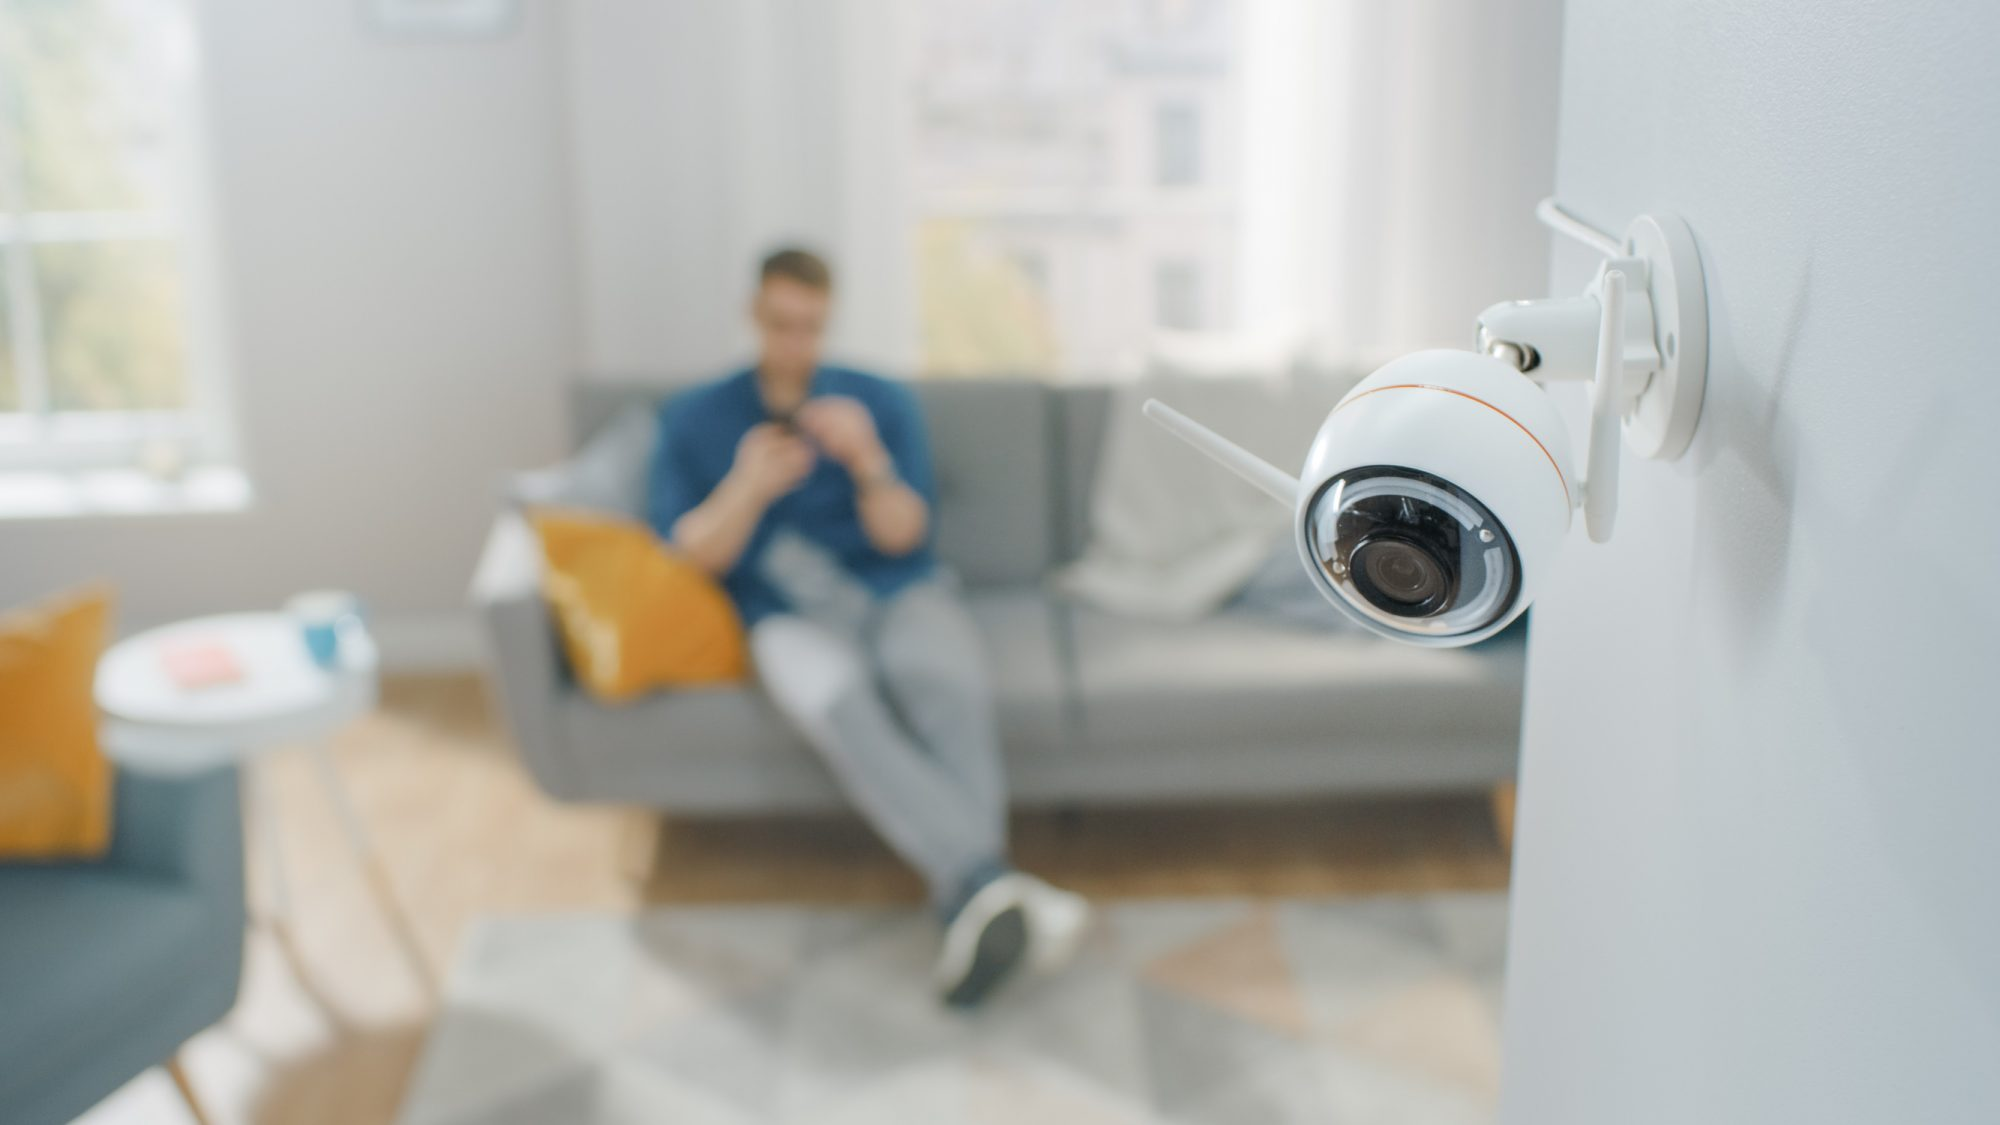 Close Up Object Shot of a Modern Wi-Fi Surveillance Camera with Two Antennas on a White Wall in a Cozy Apartment. Man is Sitting on a Sofa in the Background.